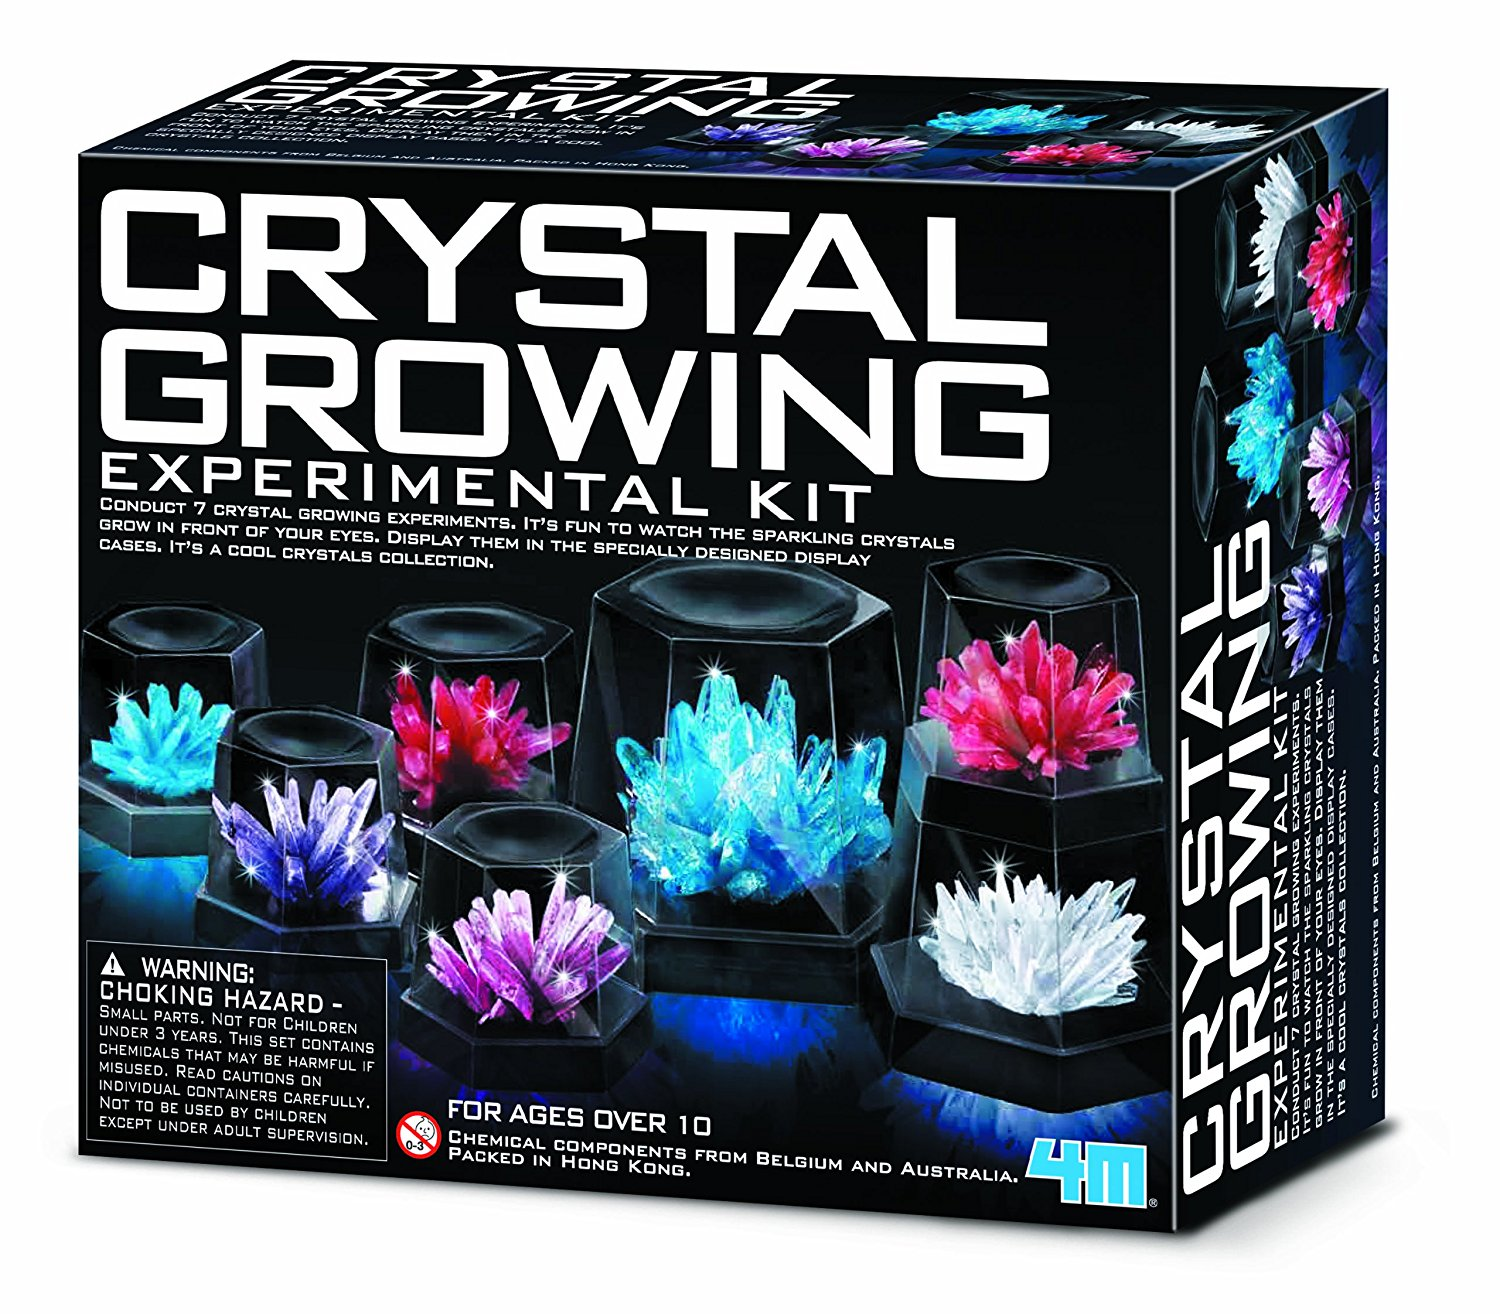 Crystal Growing Experiment Kit